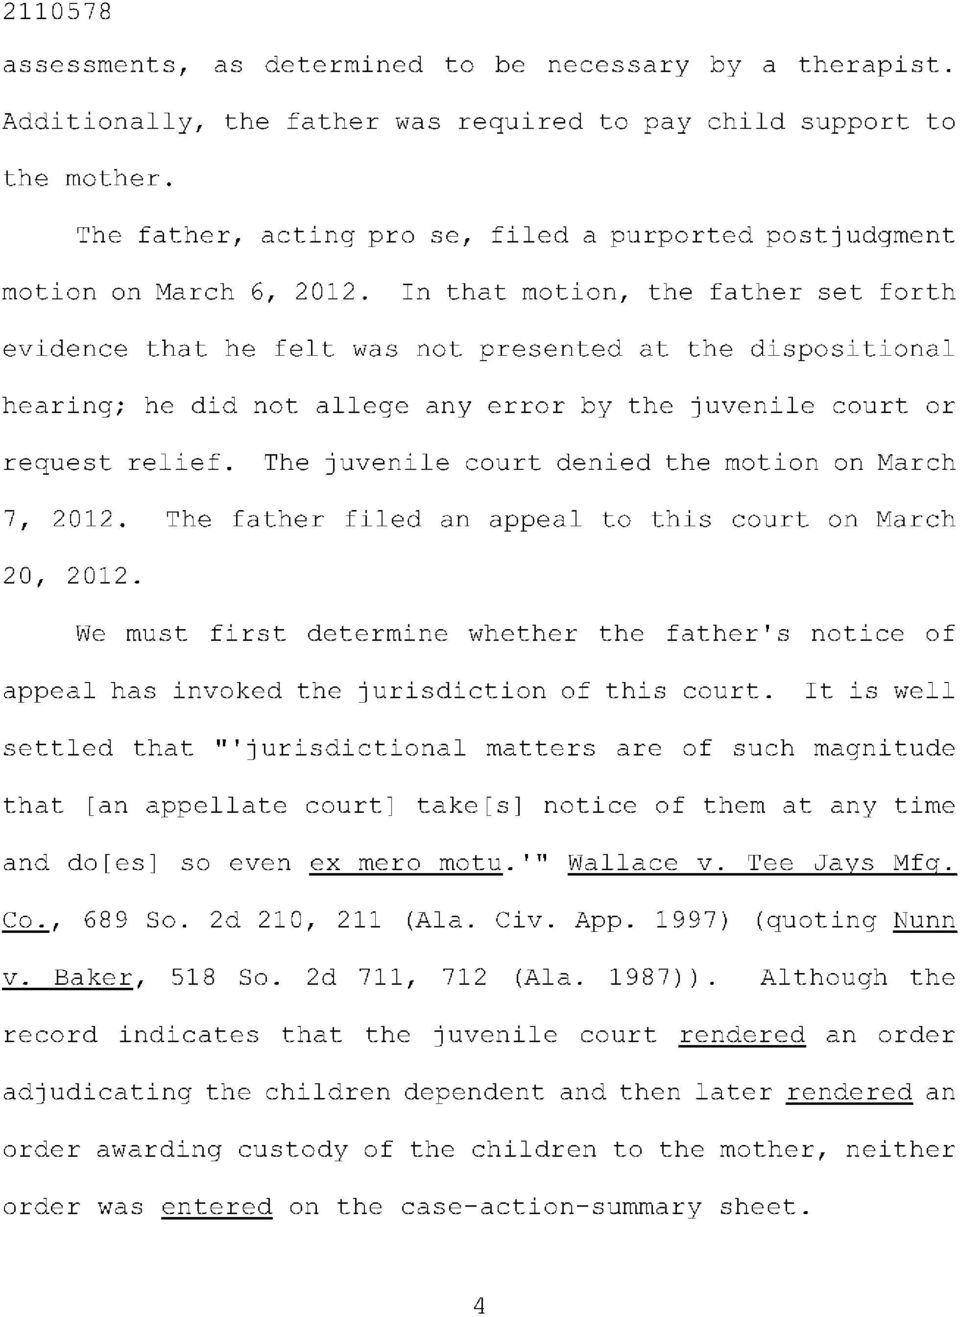 In that motion, the father set forth evidence that he felt was not presented at the dispositional hearing; he did not allege any error by the juvenile court or request relief.